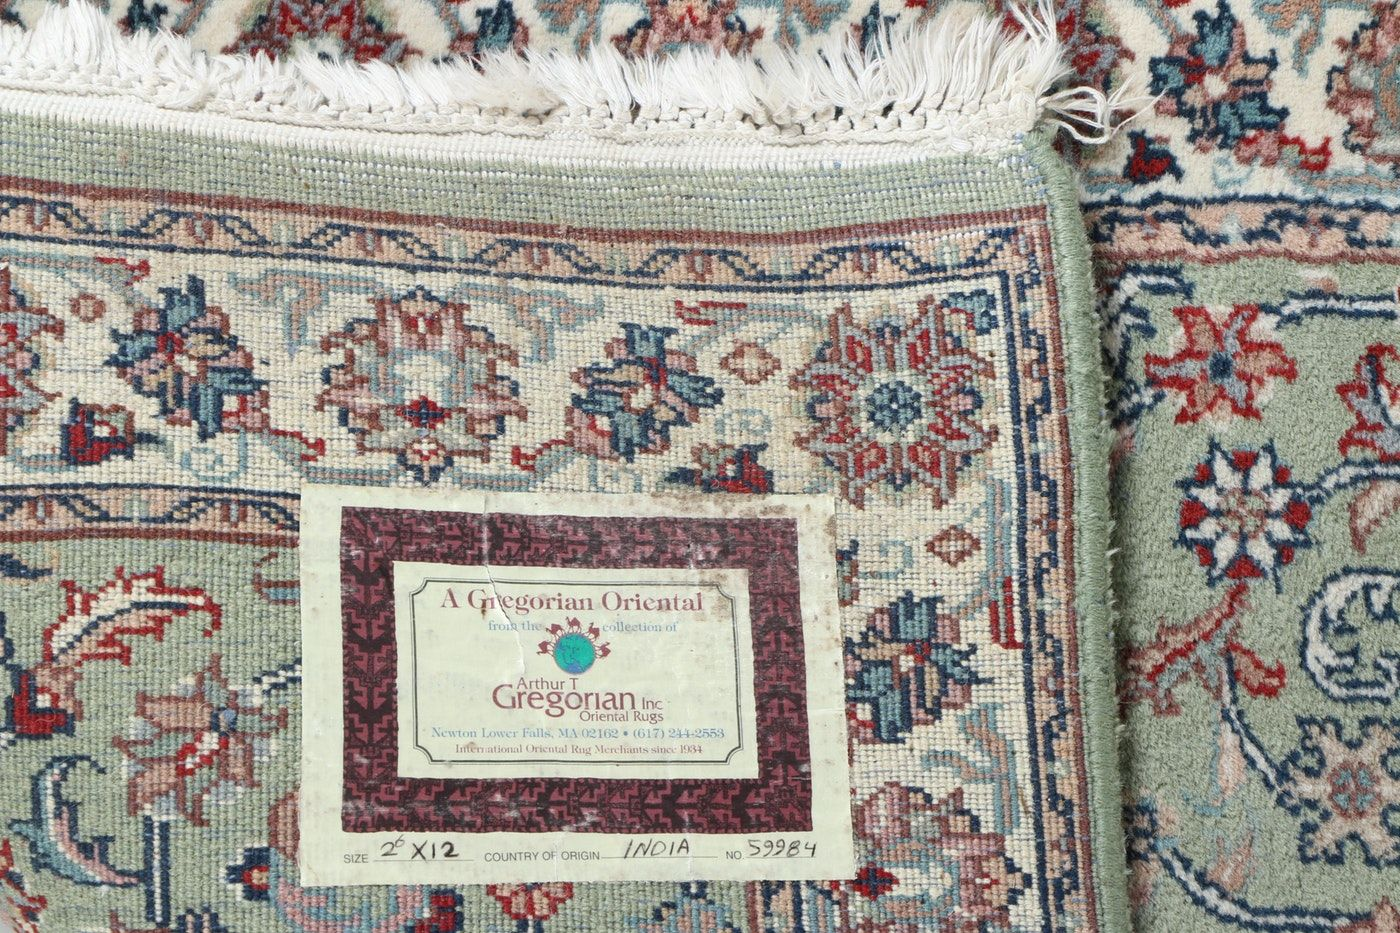 Hand Knotted Indian Wool Carpet Runner From Arthur T Gregorian Wool Carpet Carpet Runner Carpet